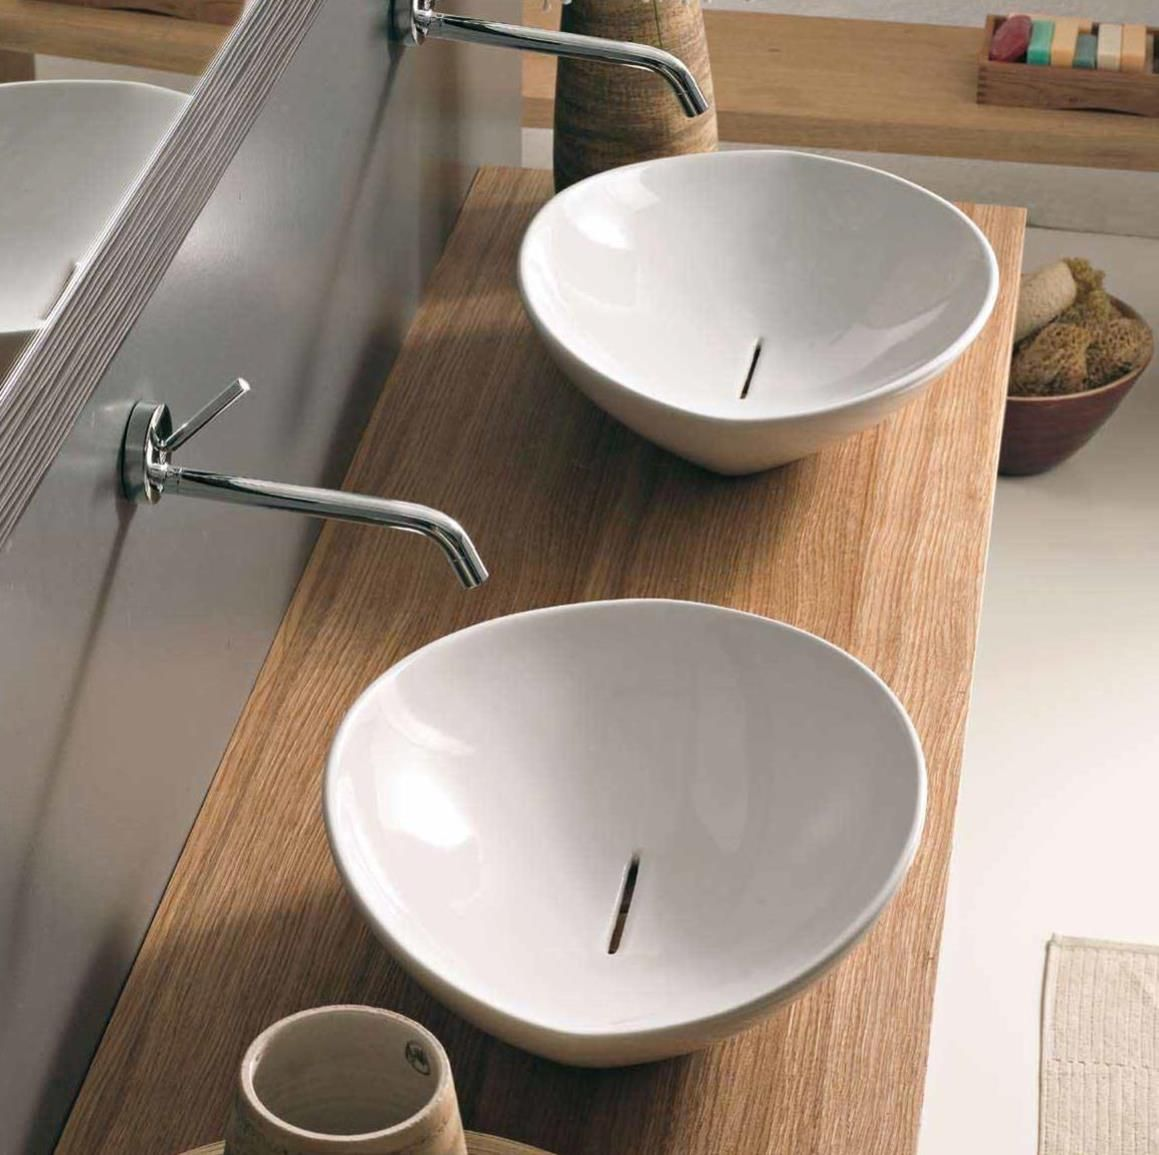 Ceramic Basin Singapore Visit Here For More Details A Wide Variety - Designer bathroom sinks singapore